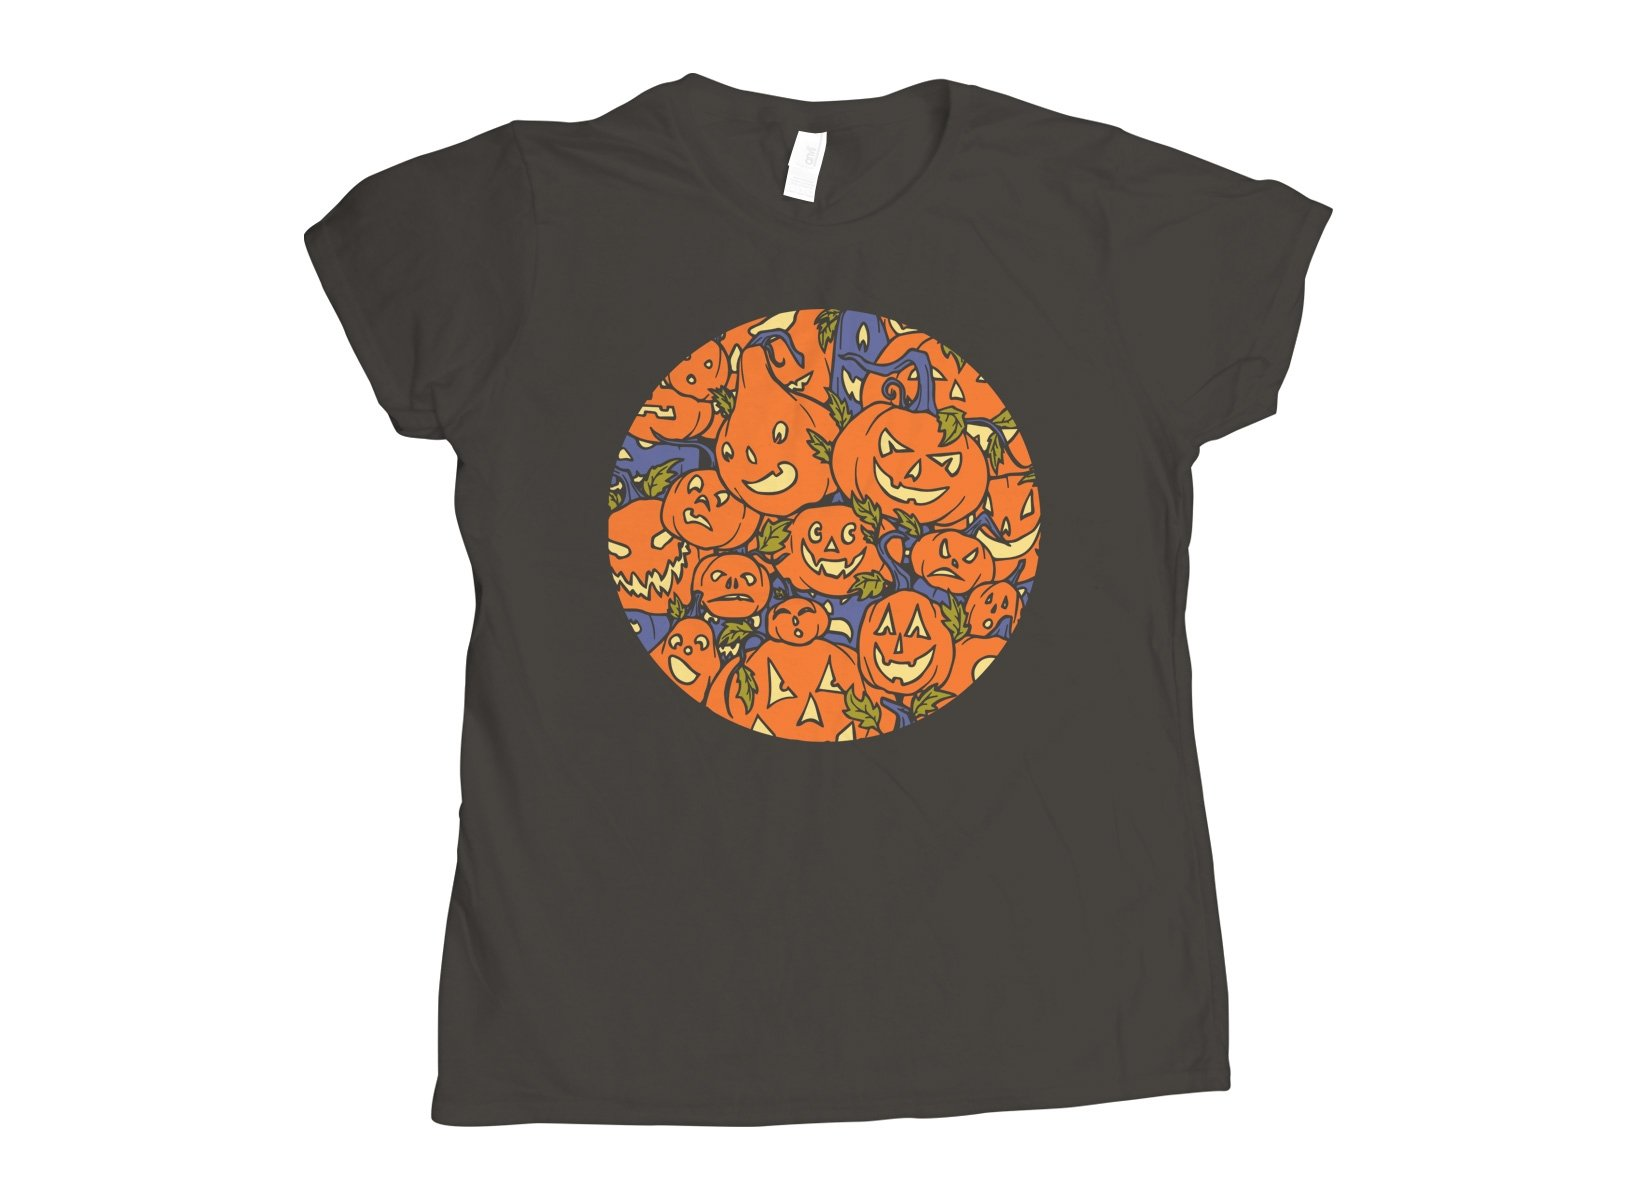 Jack-O-Lanterns on Womens T-Shirt